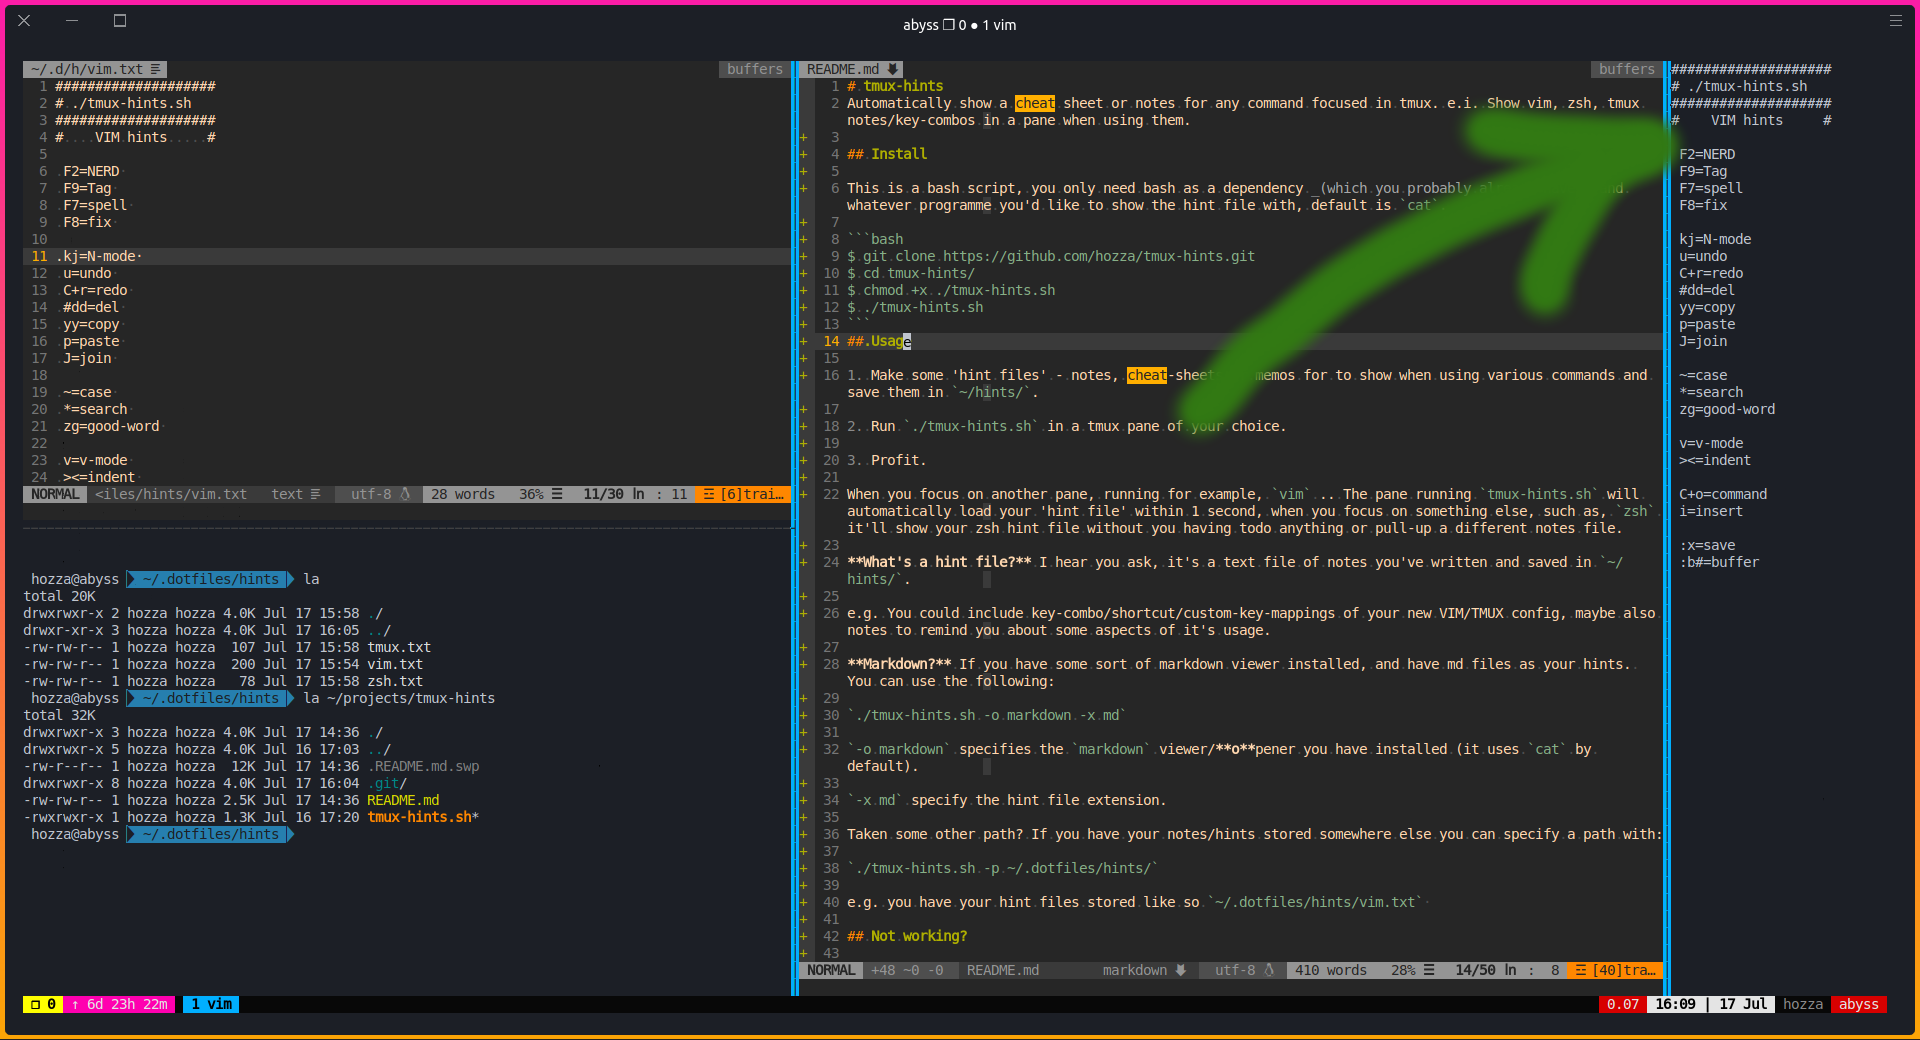 tmux-hint.sh Screenshot